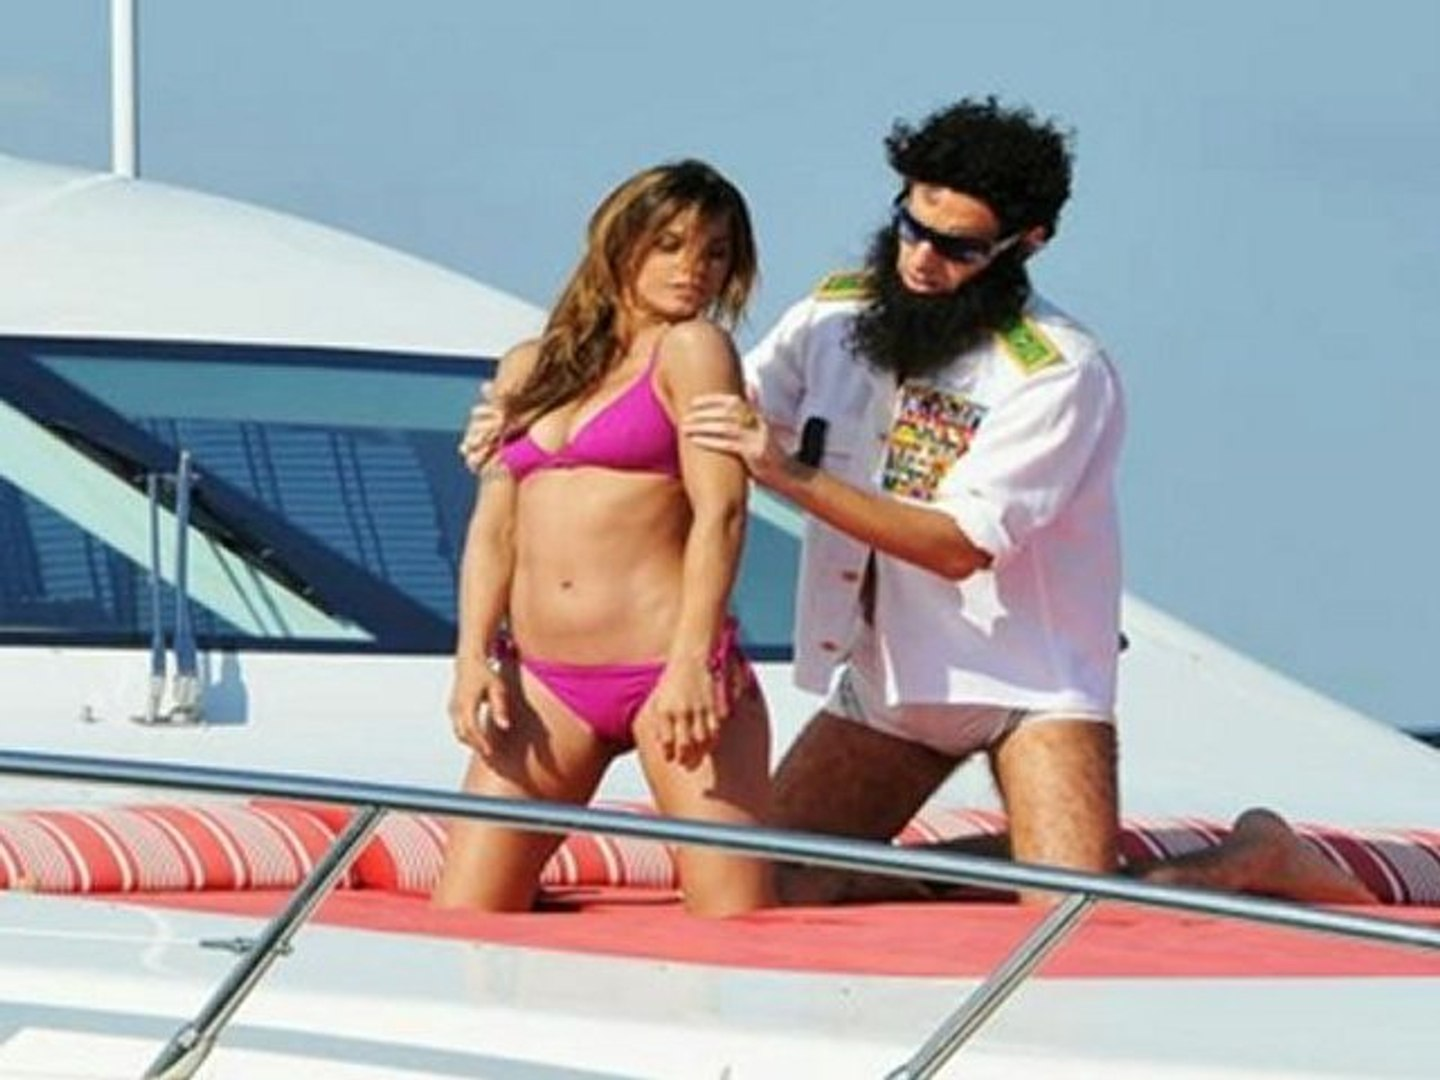 The Dictator Movie Full 2012 Full Movie Part 1/9 HD Long Movie Online Free